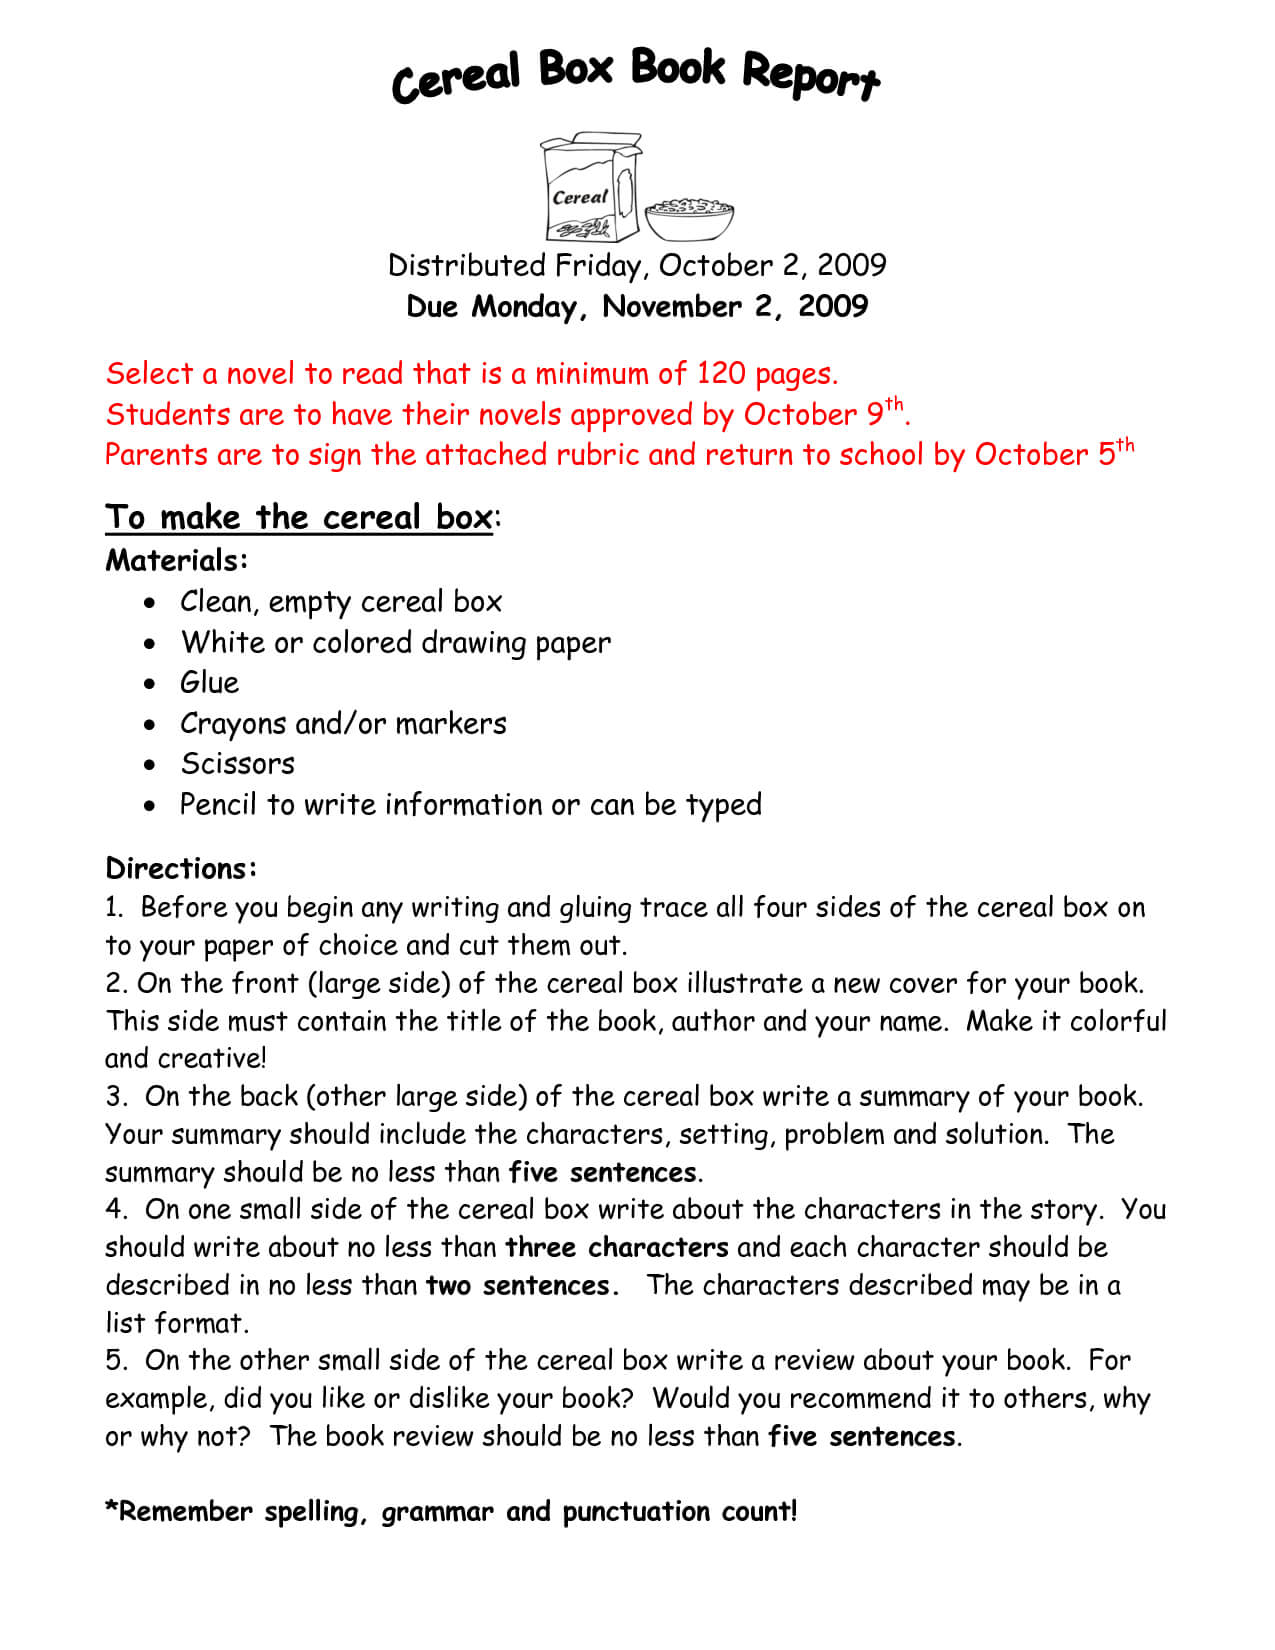 Cereal Box Book Report Samples Instructions For Reports With Regard To Cereal Box Book Report Template